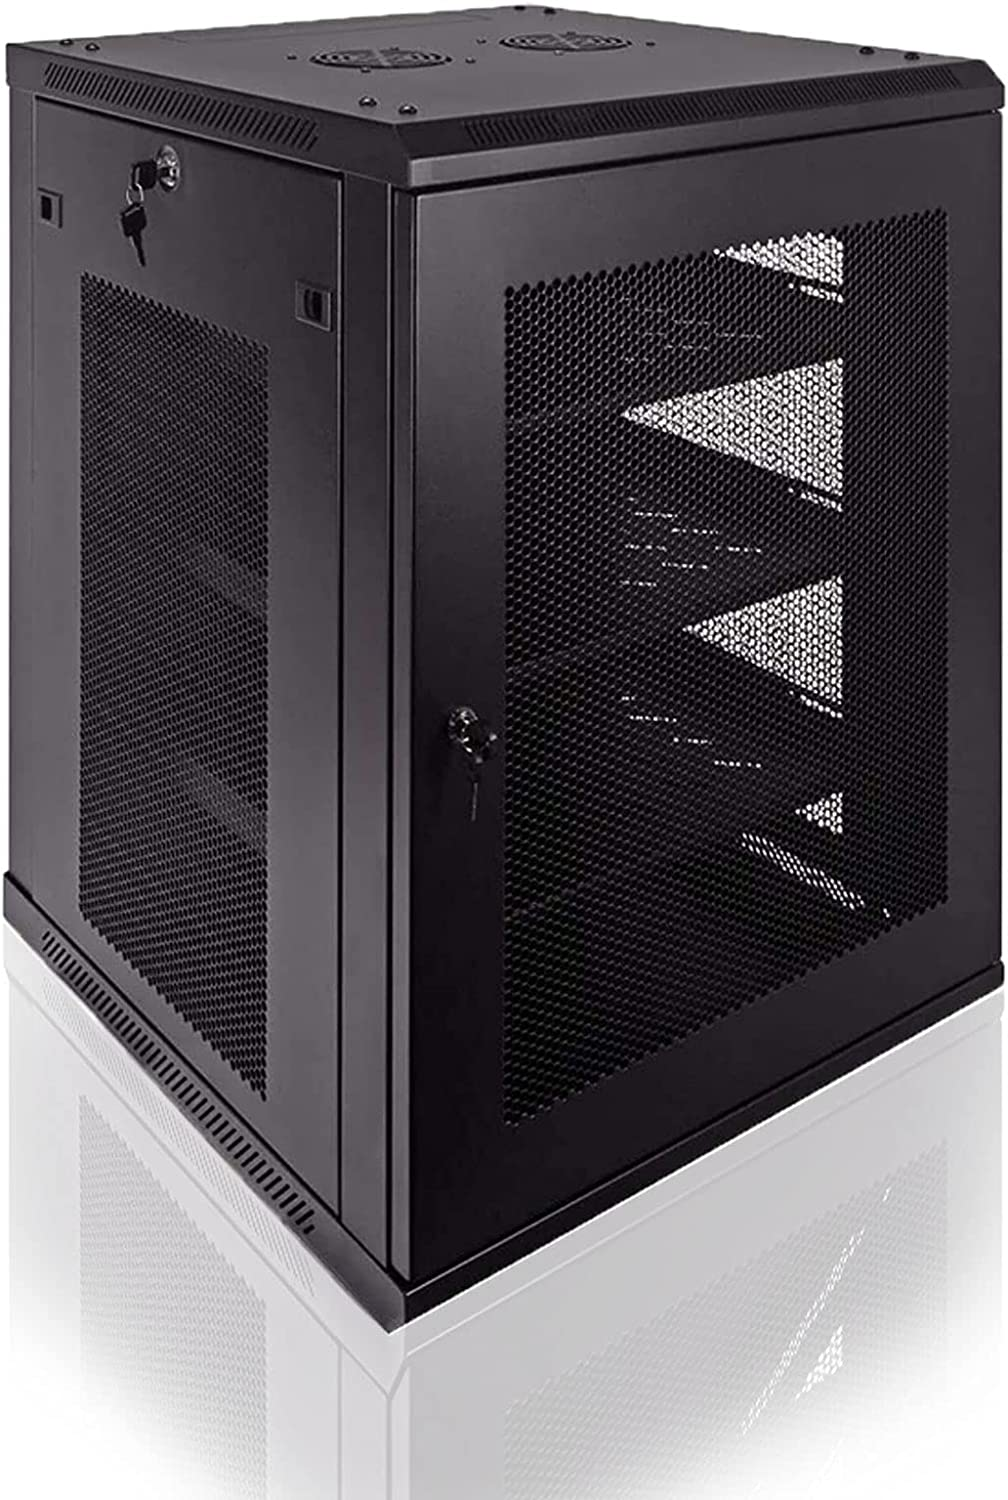 FerruNet 15U Luxury IT Wall Mount Cabinet Chassis 24 inch deep Server Network Rack with Locking Perforated Door, Wall-Mounted Equipment, ApplytoSmall Office, Home Office.